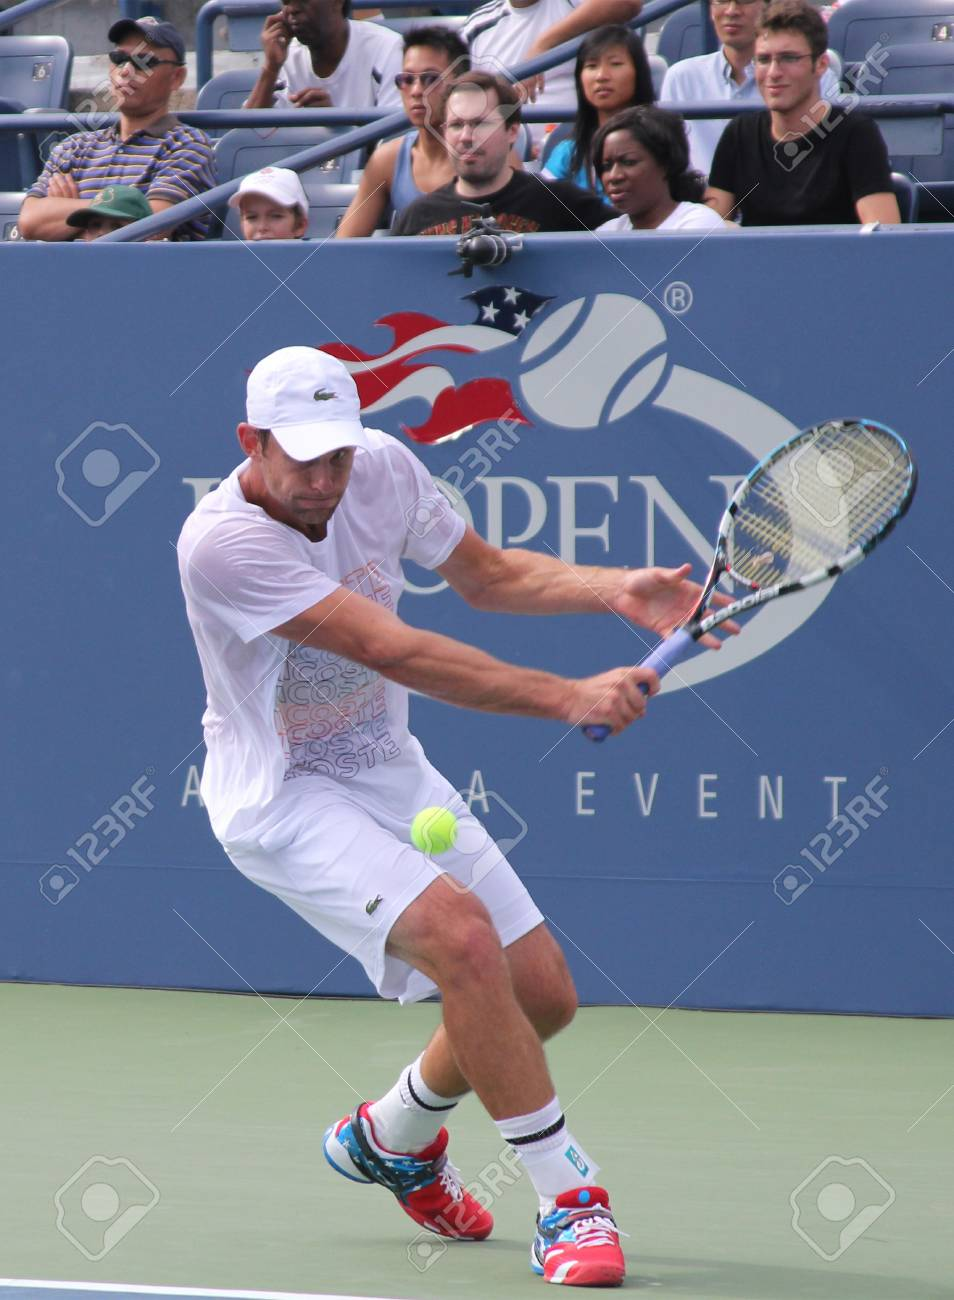 FLUSHING, NY - AUGUST 25: Grand Slam champion Andy Roddick practices for US Open at Louis Armstrong Stadium at Billie Jean King National Tennis Center on August 25, 2012 in Flushing, NY.  Stock Photo - 17522424